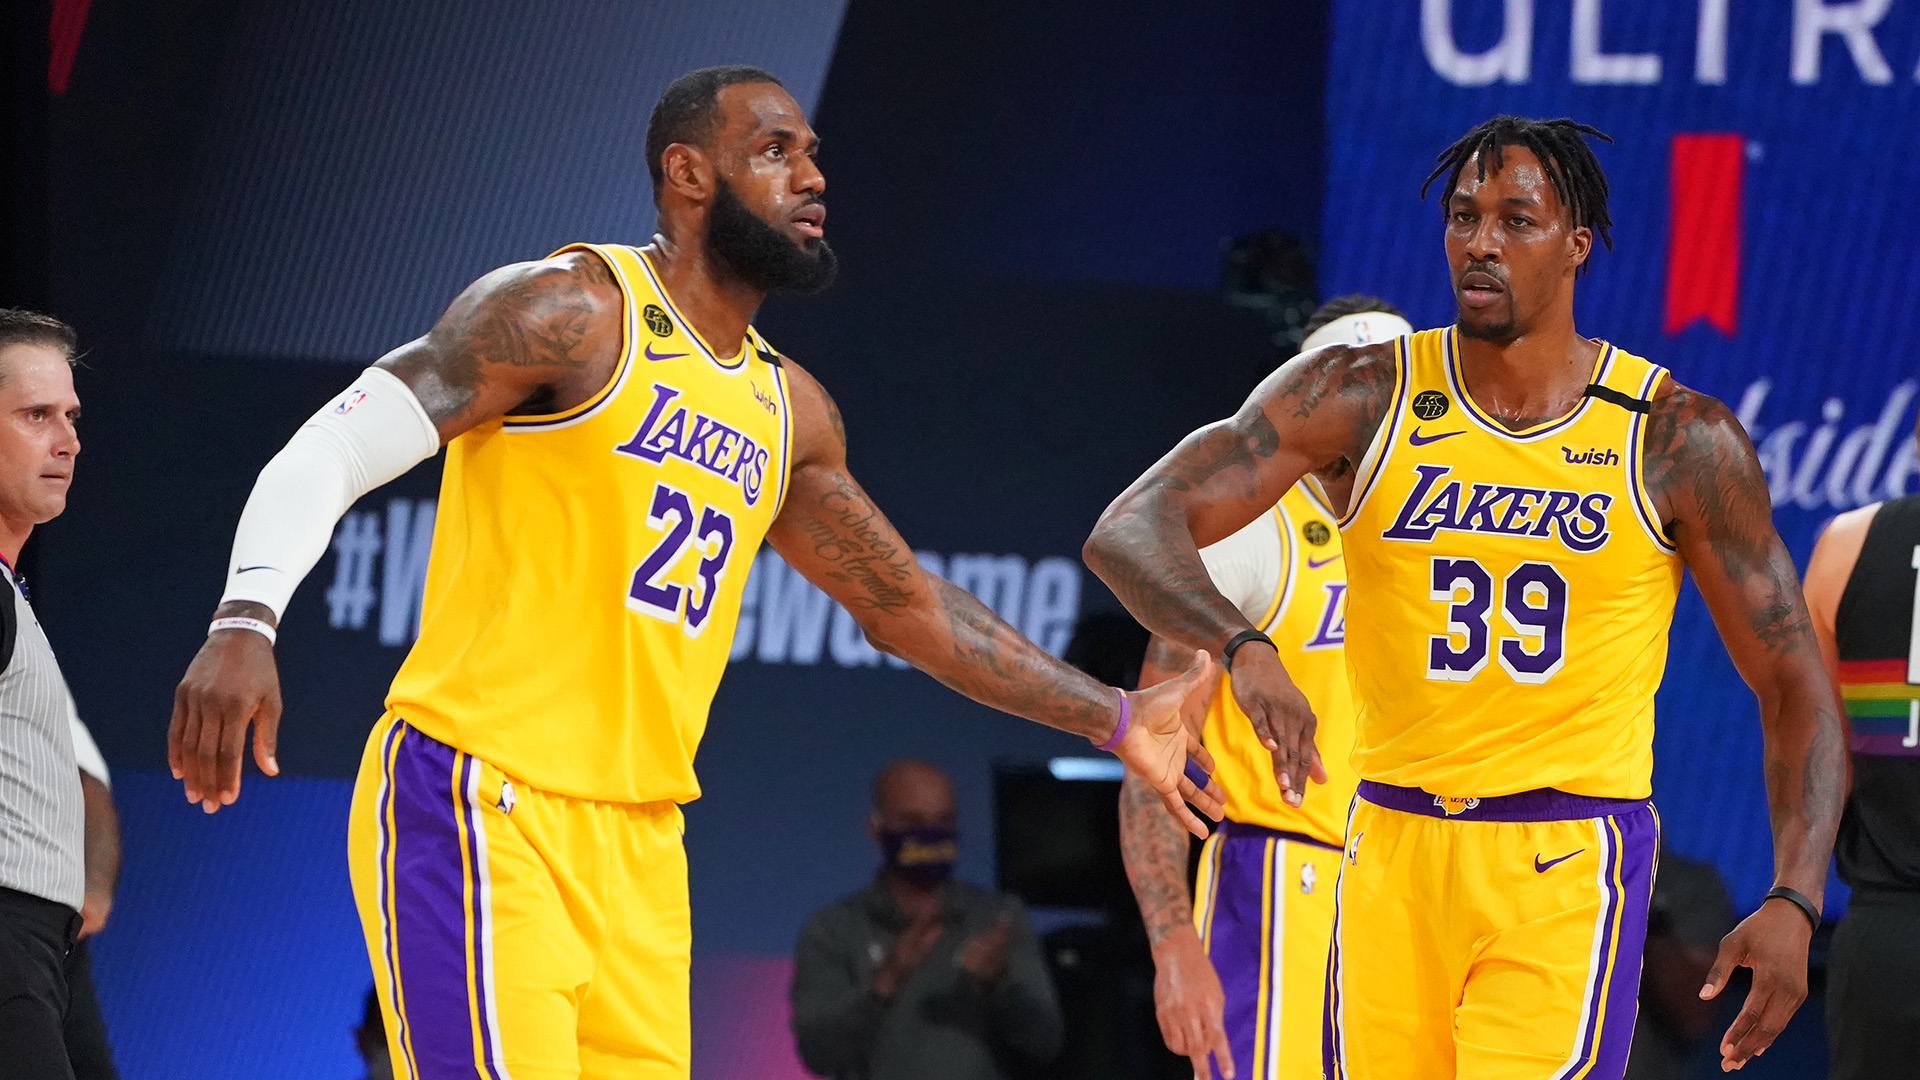 Will experience propel Lakers to top of the West?